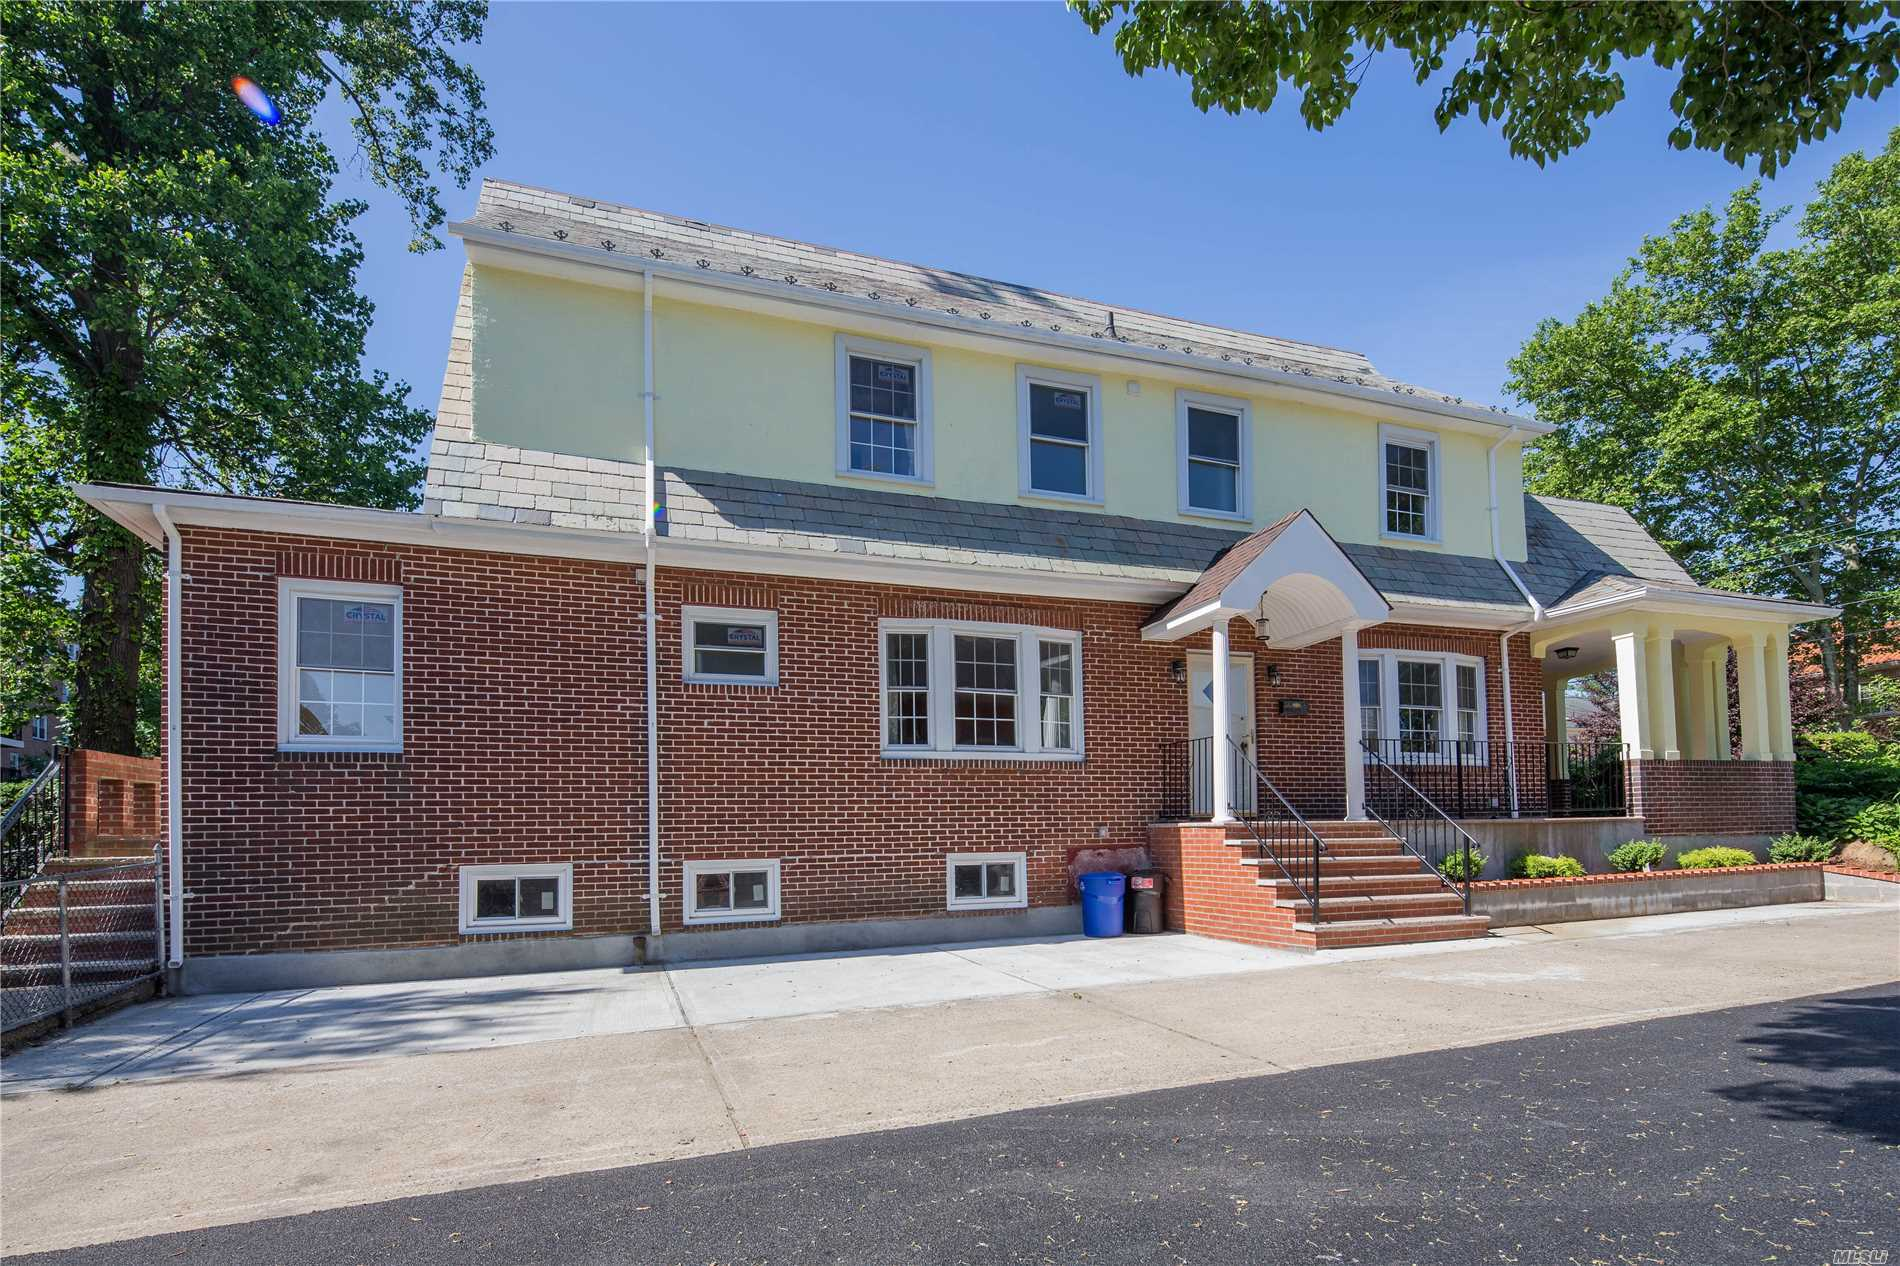 Detached Beautiful Center Hall Colonial.Totally New Renovated, Brand New Floor & Kitchen, Update New Electric And All Windows. 5 Brs W/ Large Lr & Family Room, Real Wood Burnning Fp.Finished Basement W Laundry Room.